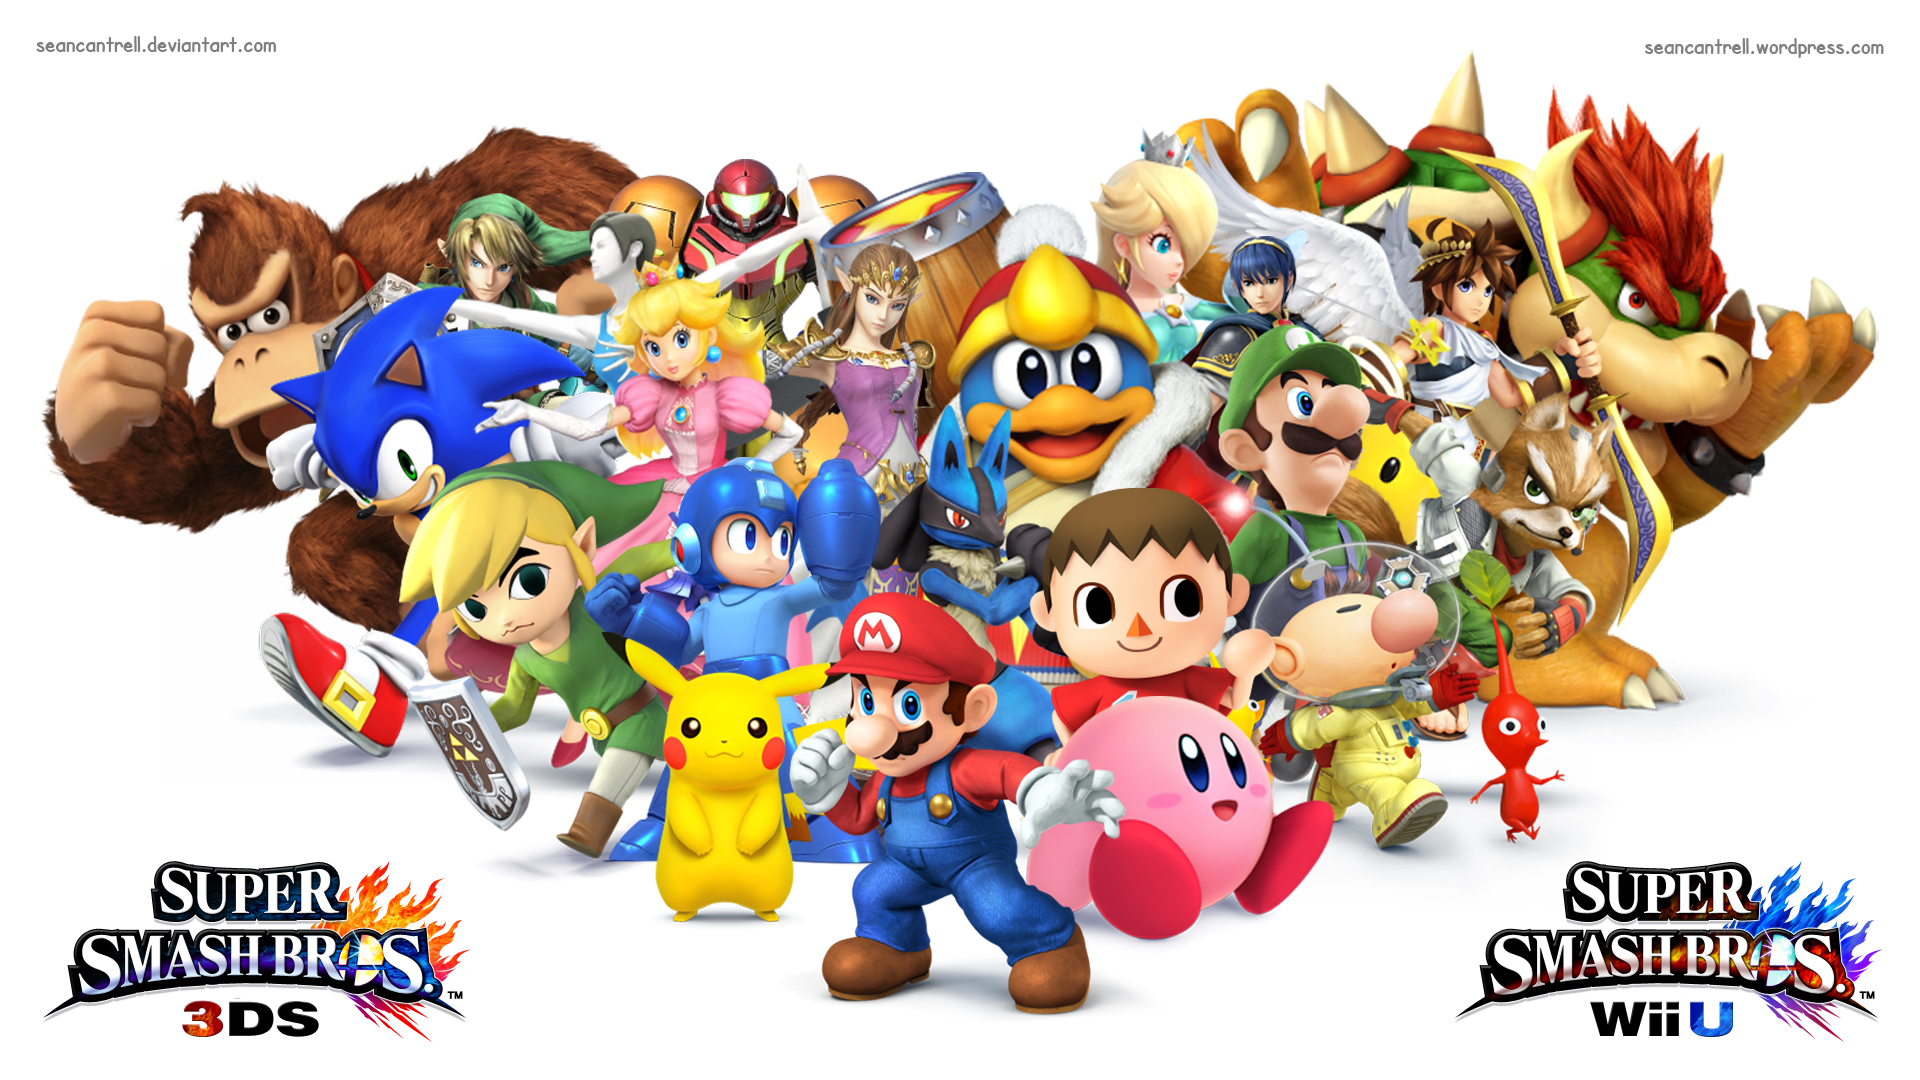 45 Super Smash Bros Hd Wallpaper On Wallpapersafari